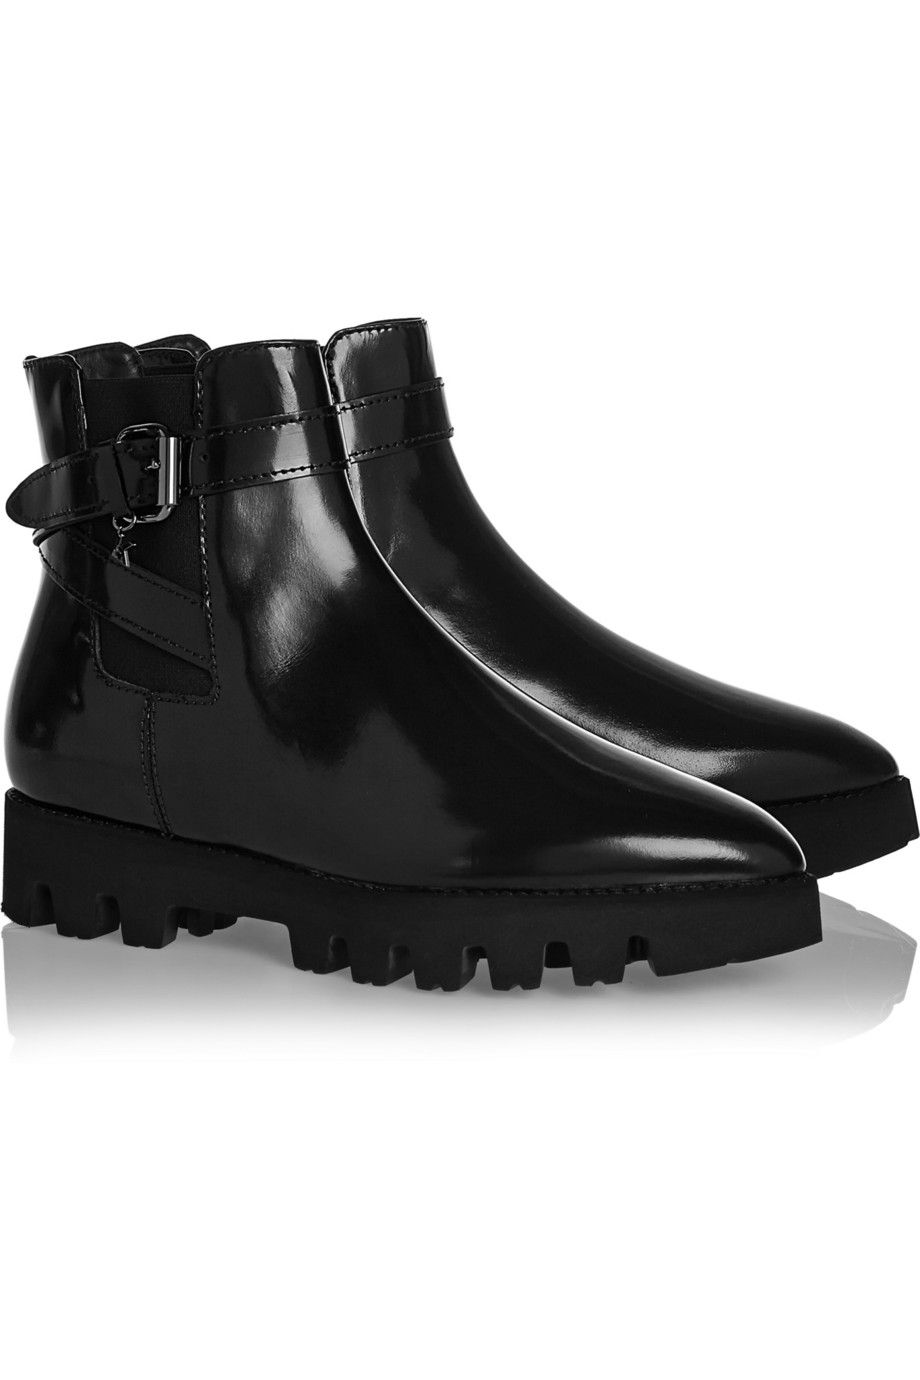 "<p>Karl Lagerfeld Ankle Boots, $273; <a href=""https://www.theoutnet.com/en-US/product/Karl-Lagerfeld/Glossed-leather-ankle-boots/453871"">theoutnet.com</a> </p>"